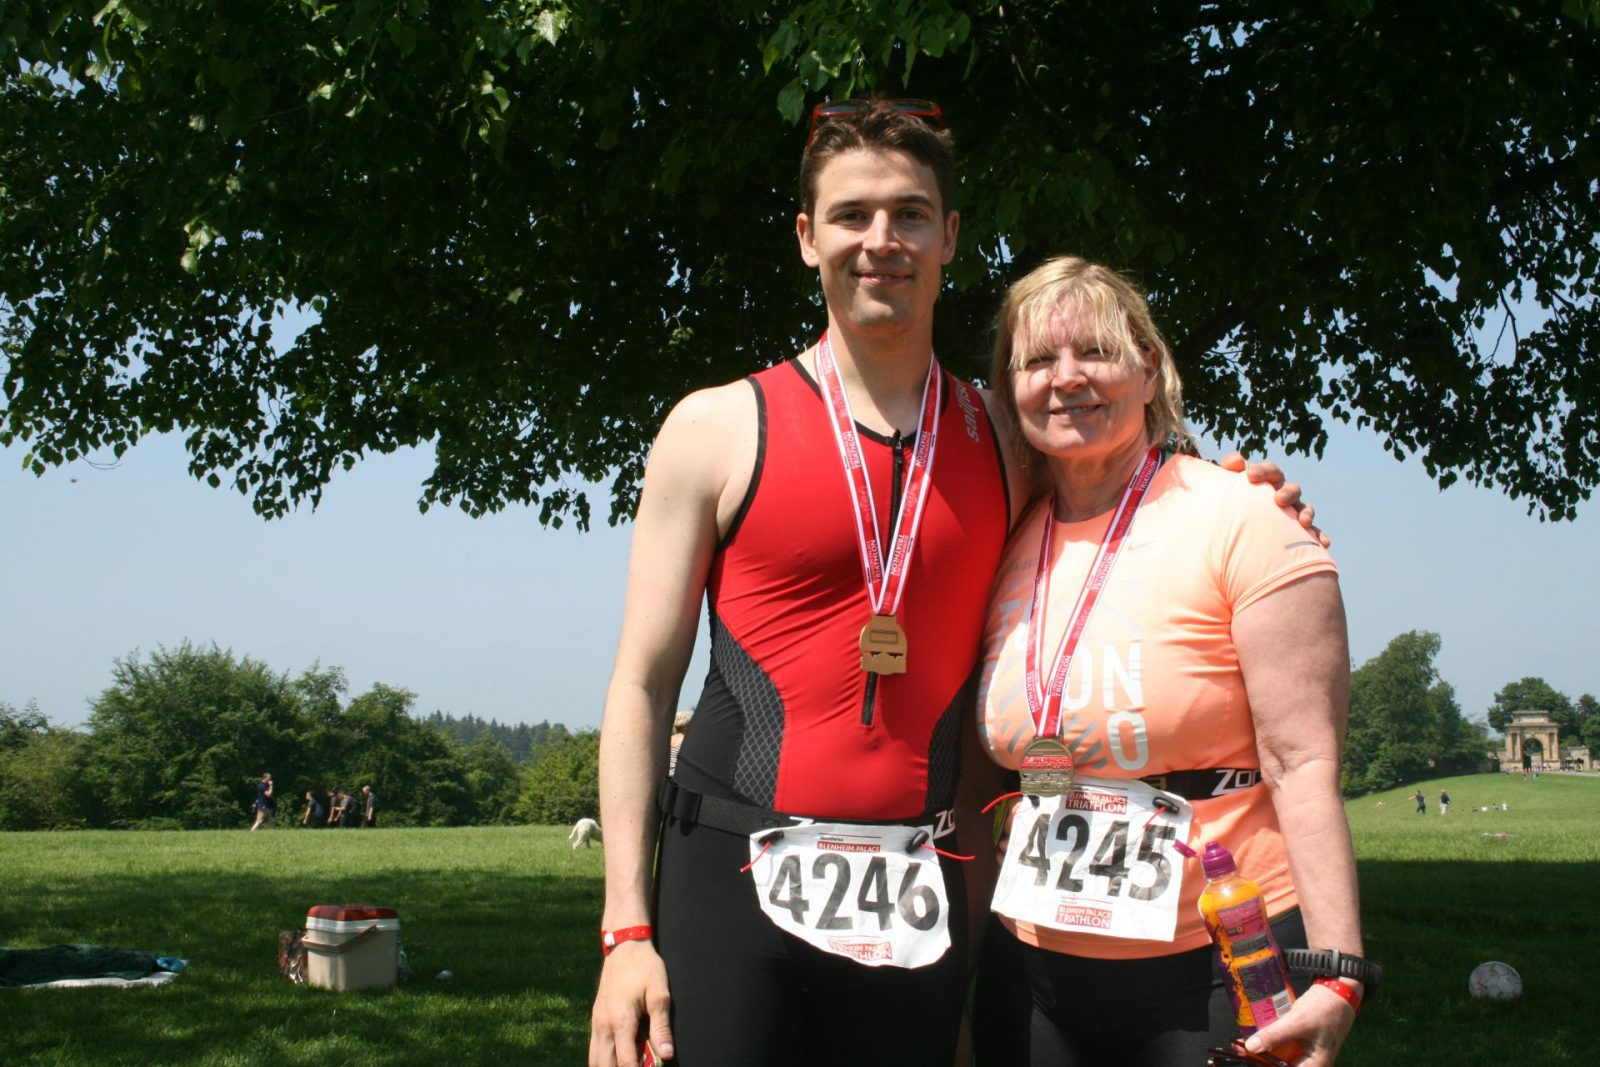 Proud finishers of the Sprint Distance Triathlon